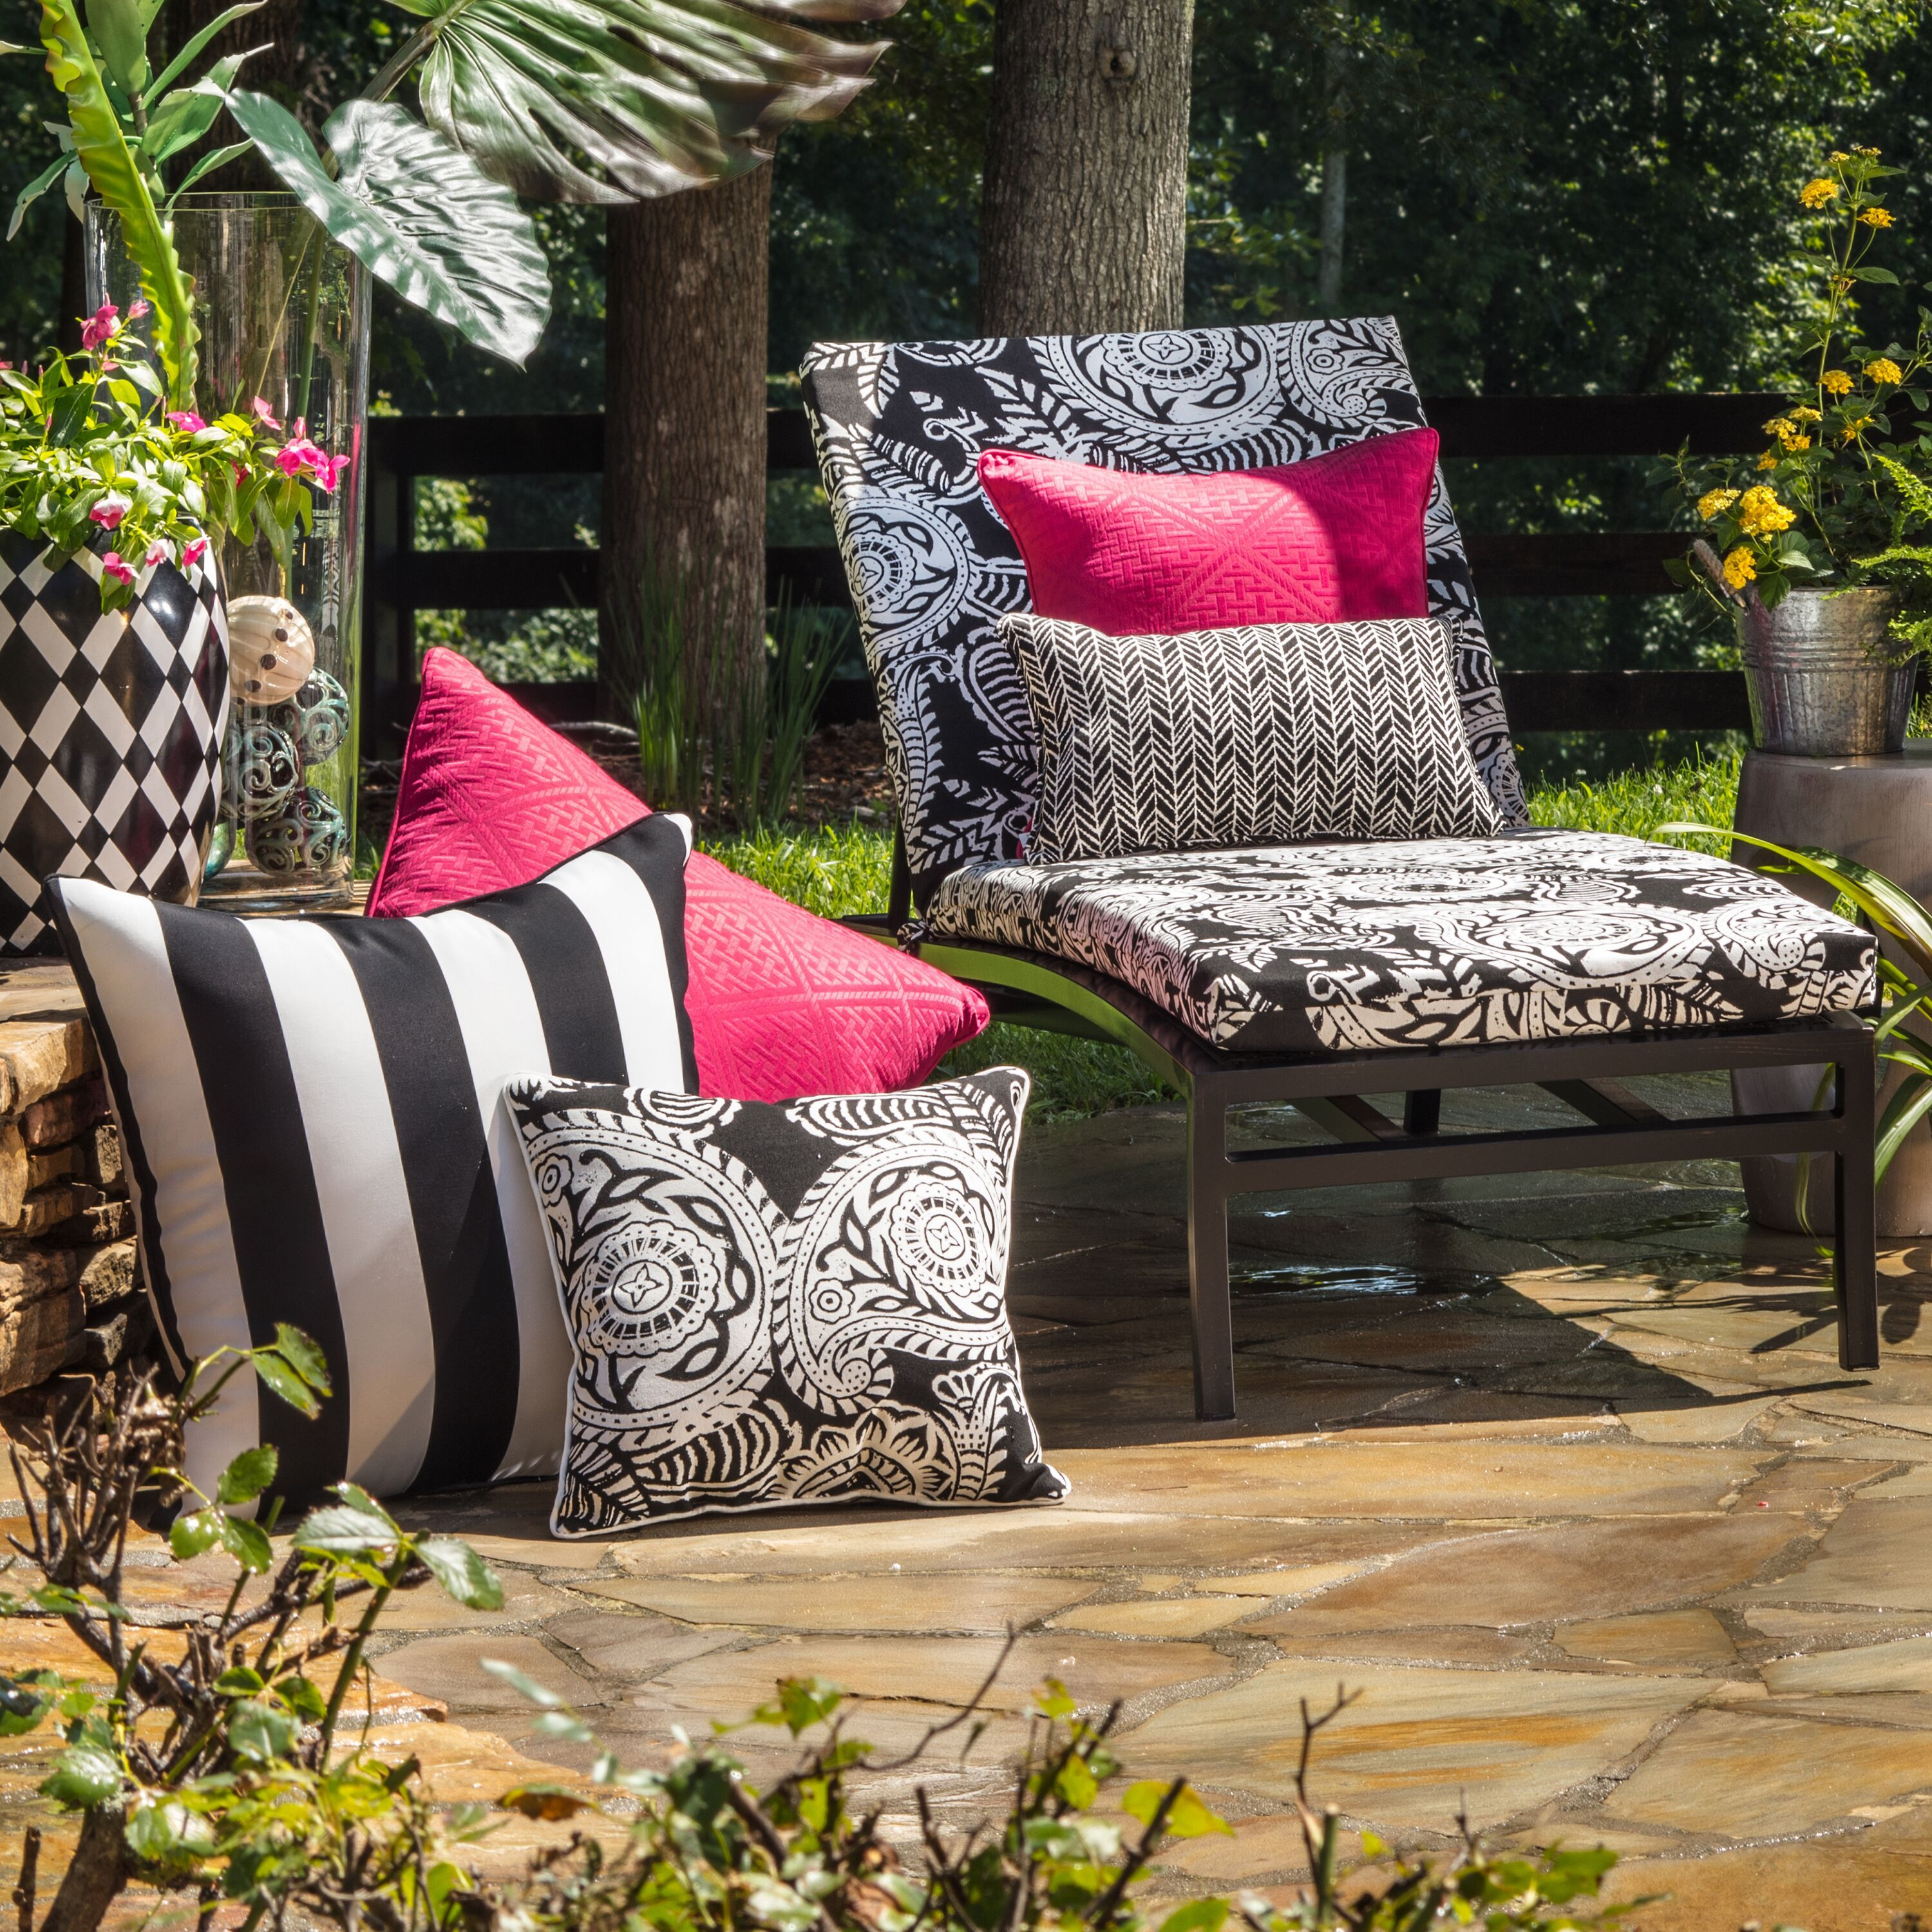 Elegance Awaits With Outdoor Cushions And Pillows Outdoor Cushions And Pillows Outdoor Patio Decor Colorful Patio